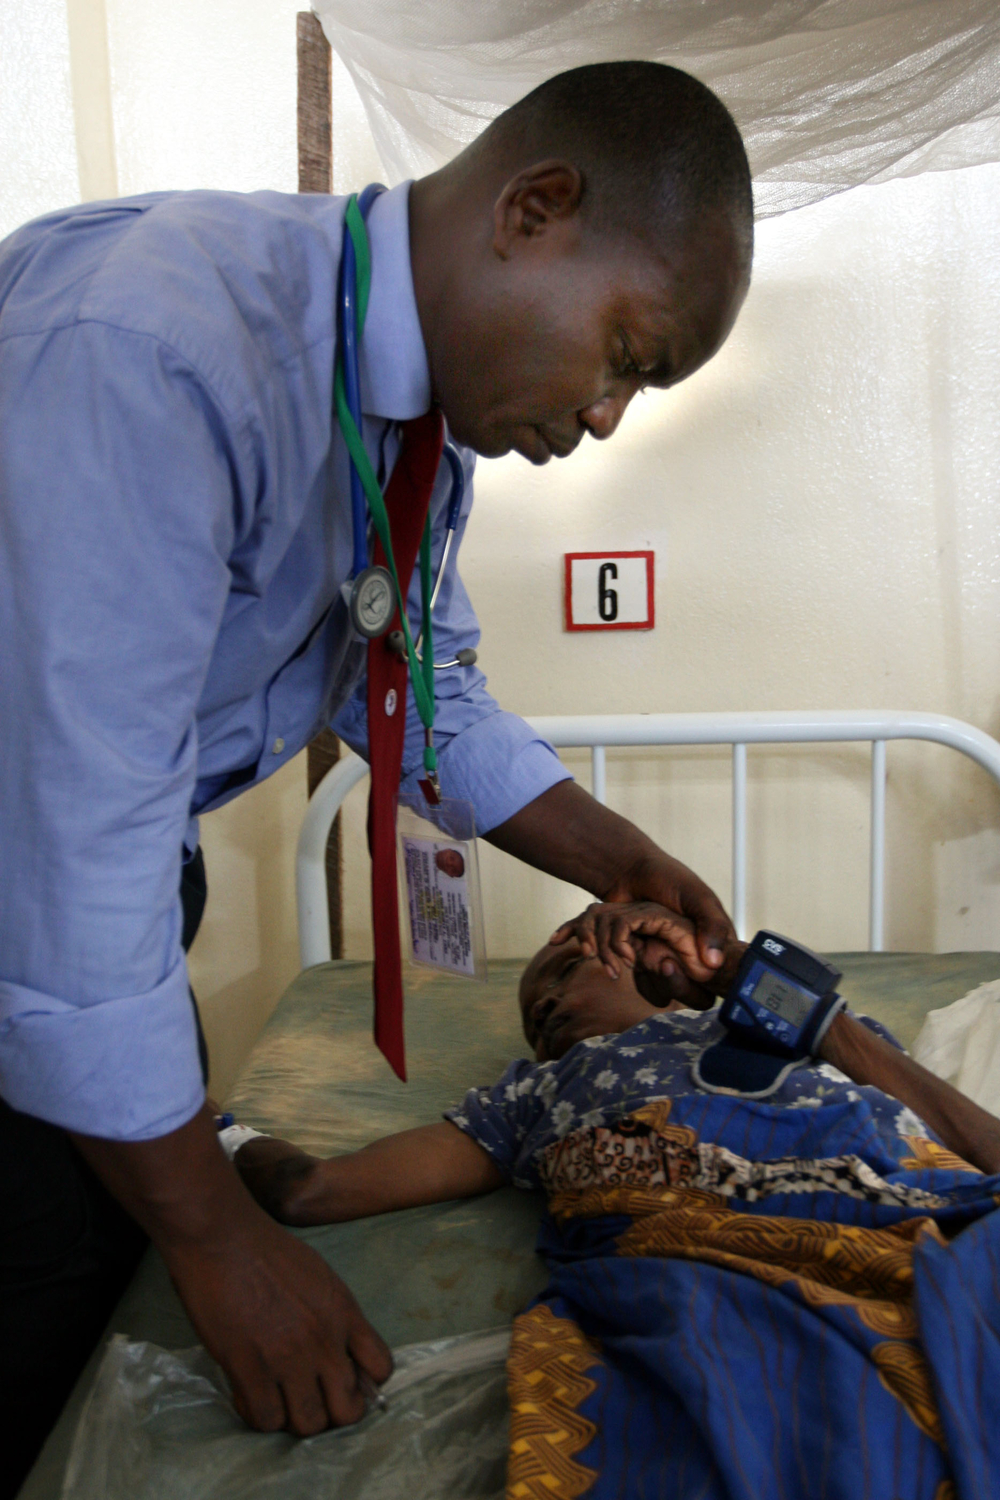 A Nigerian doctor checks an elderly female patient's blood pressure at Redemption Hospital, Monrovia, Liberia on 26th March 2008.   Medecins Sans Frontiers pulled out of the Redemption Hospital in early 2007 bringing an end to free treatment, as a result